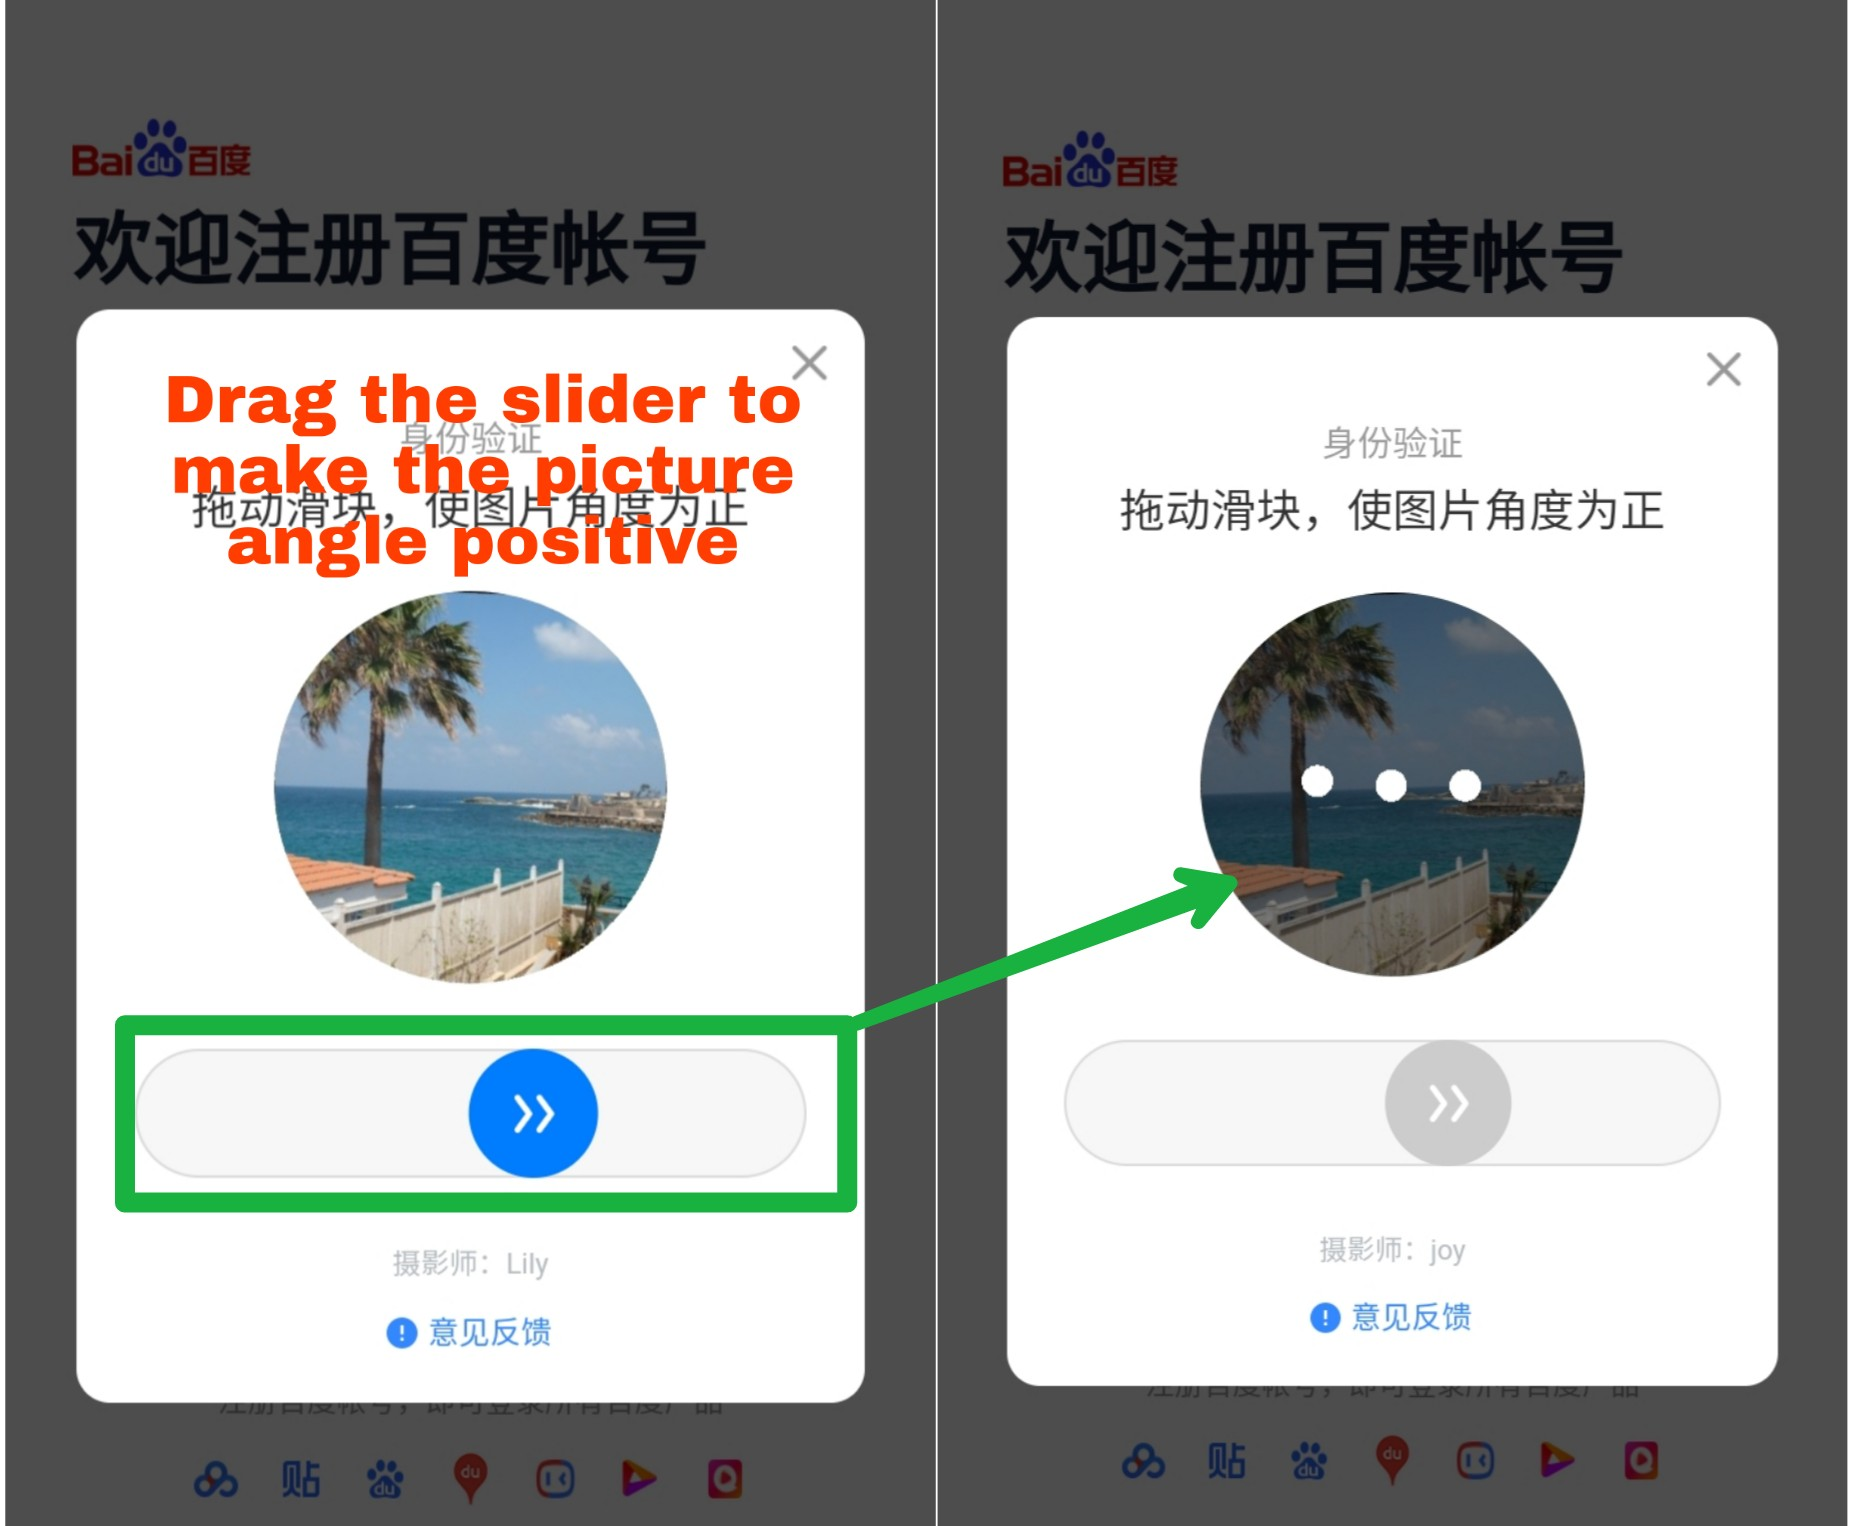 How To Register/Create Baidu Account Without Phone Outside